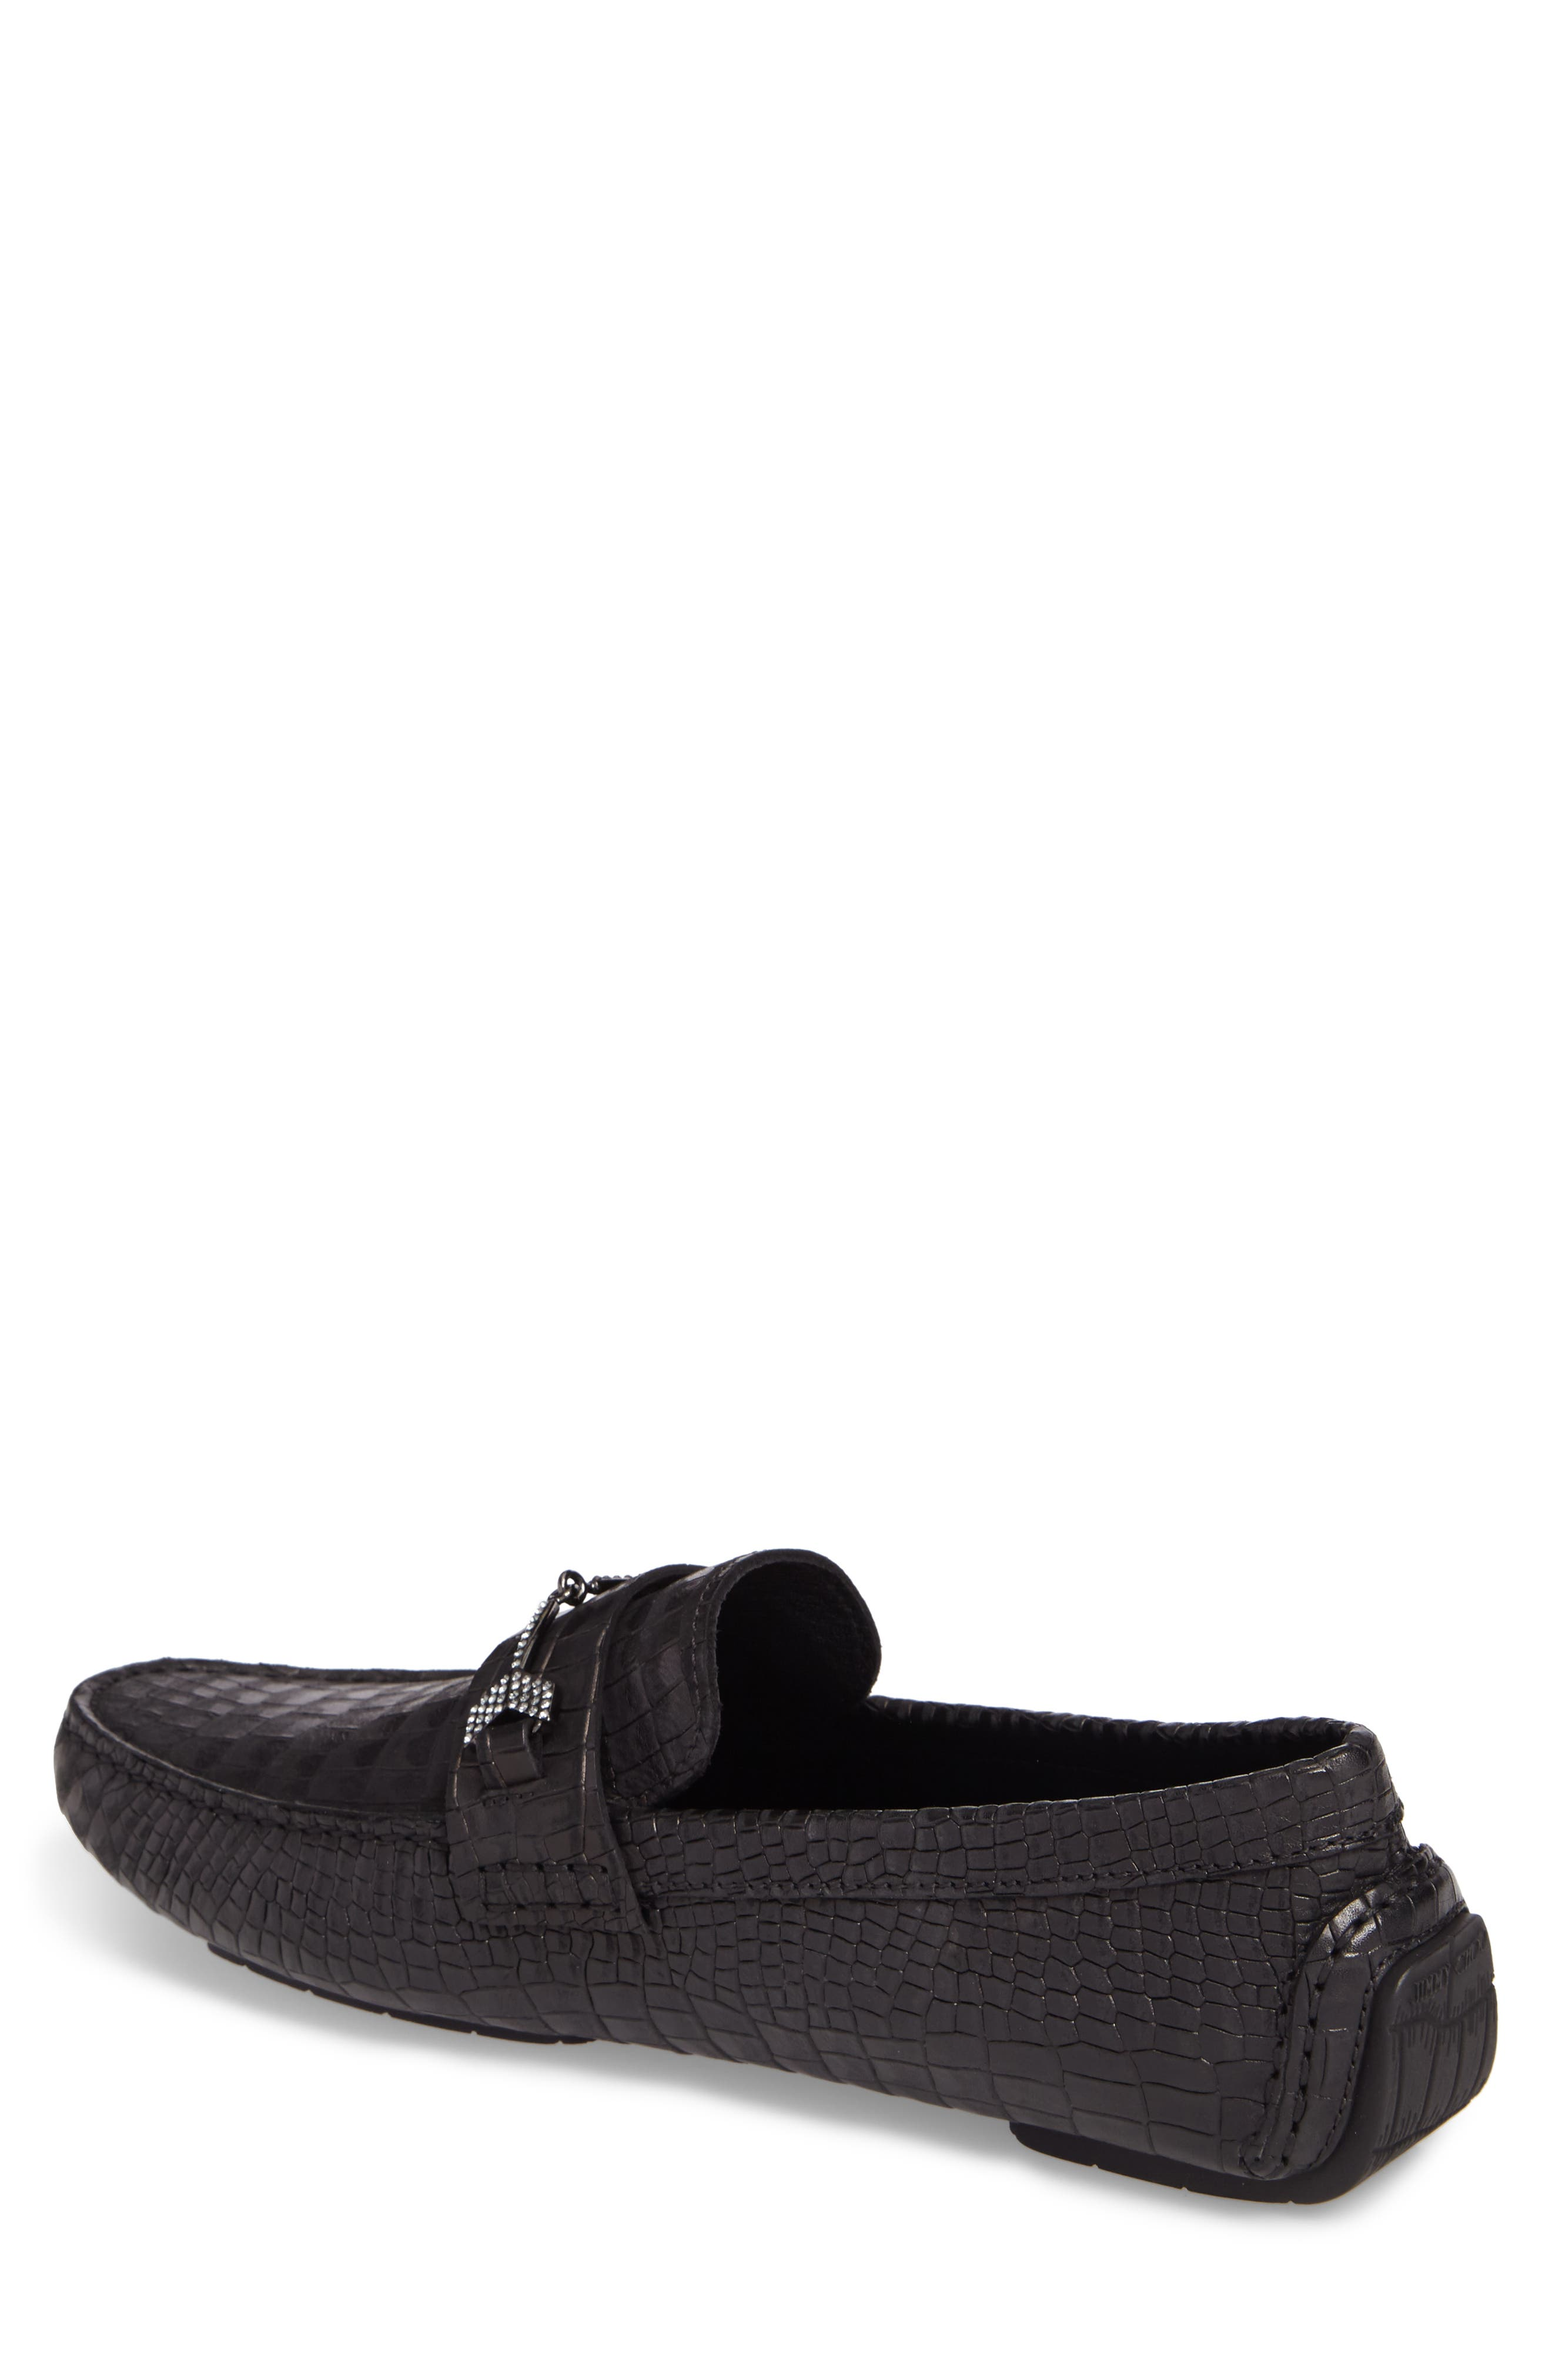 Brewer Croc Textured Driving Loafer,                             Alternate thumbnail 3, color,